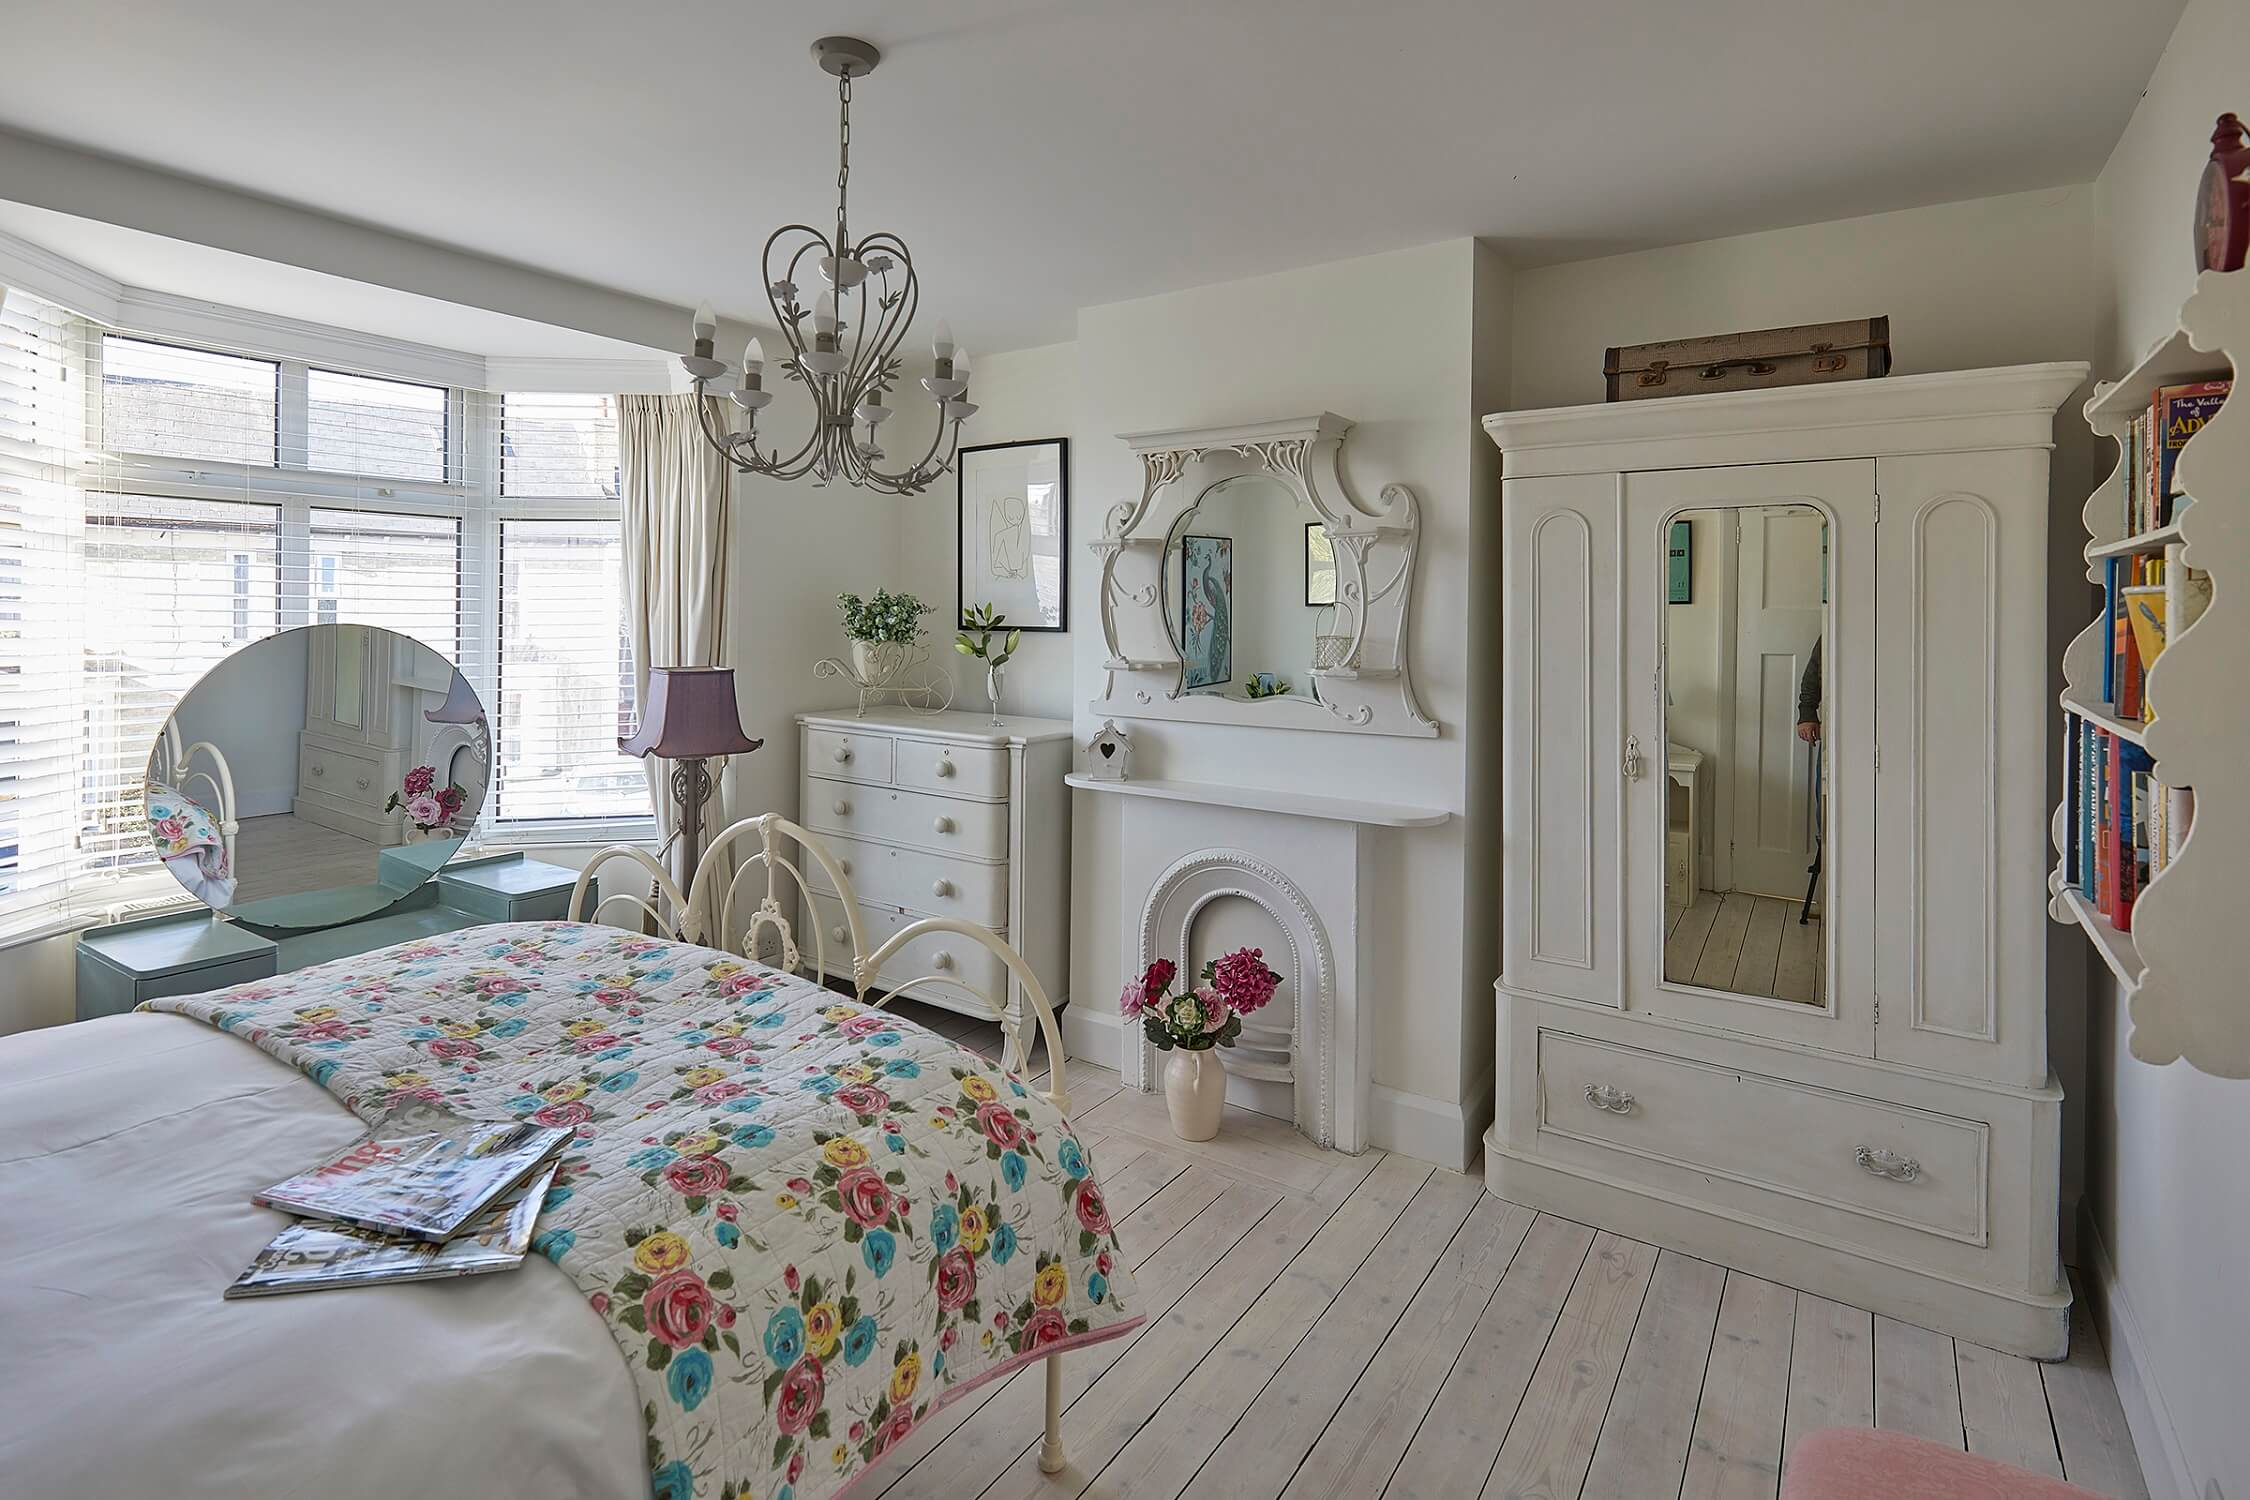 Hollies House - Bright spacious rooms in this stylish Susex getaway